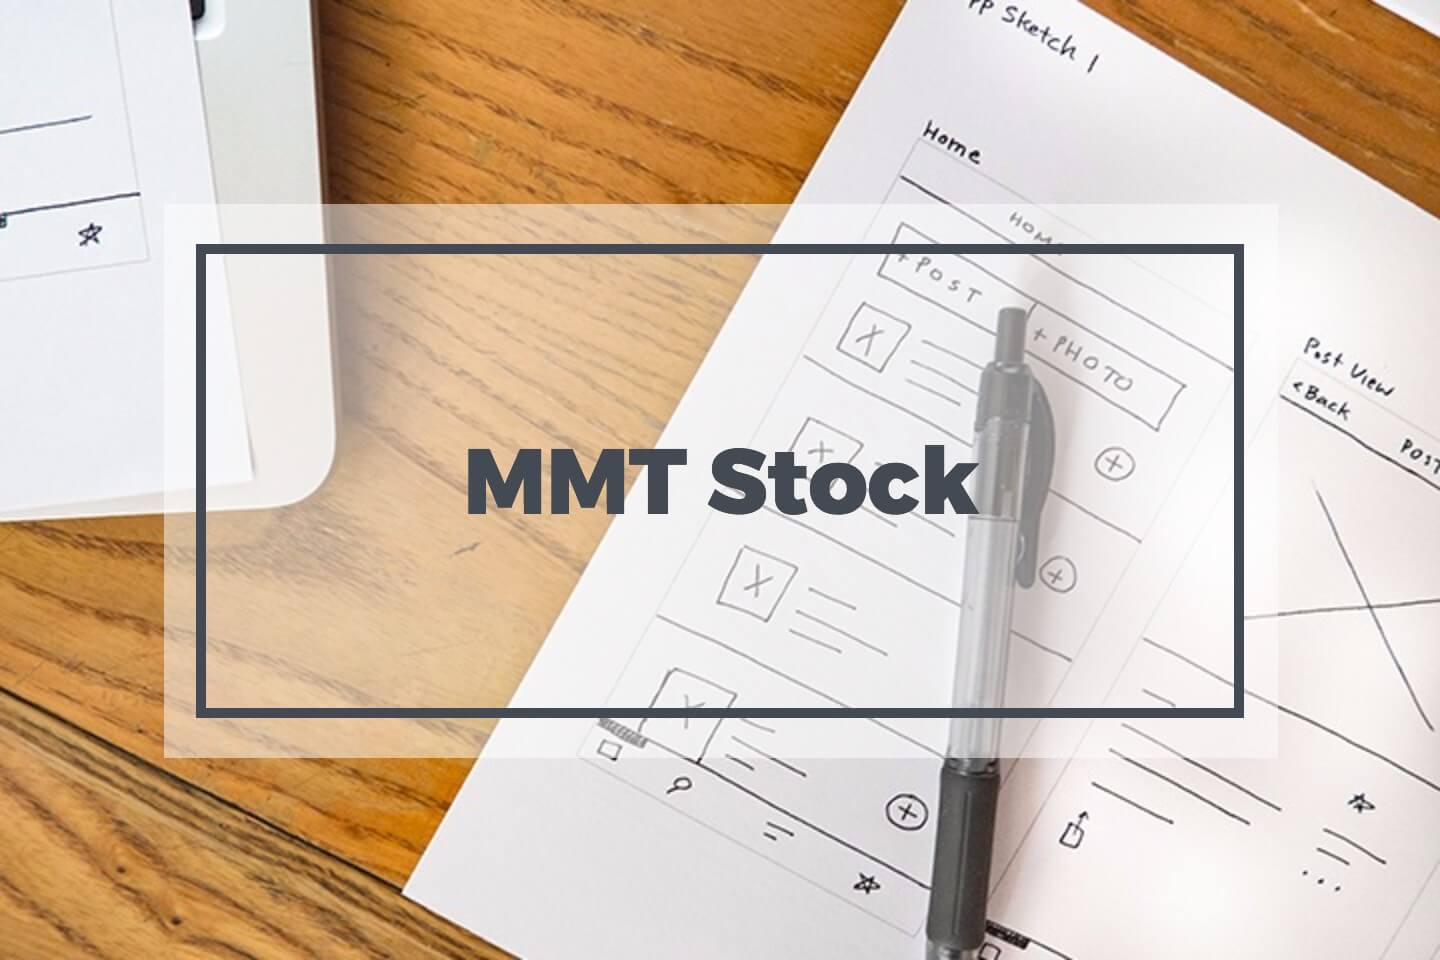 MMT Stock photos